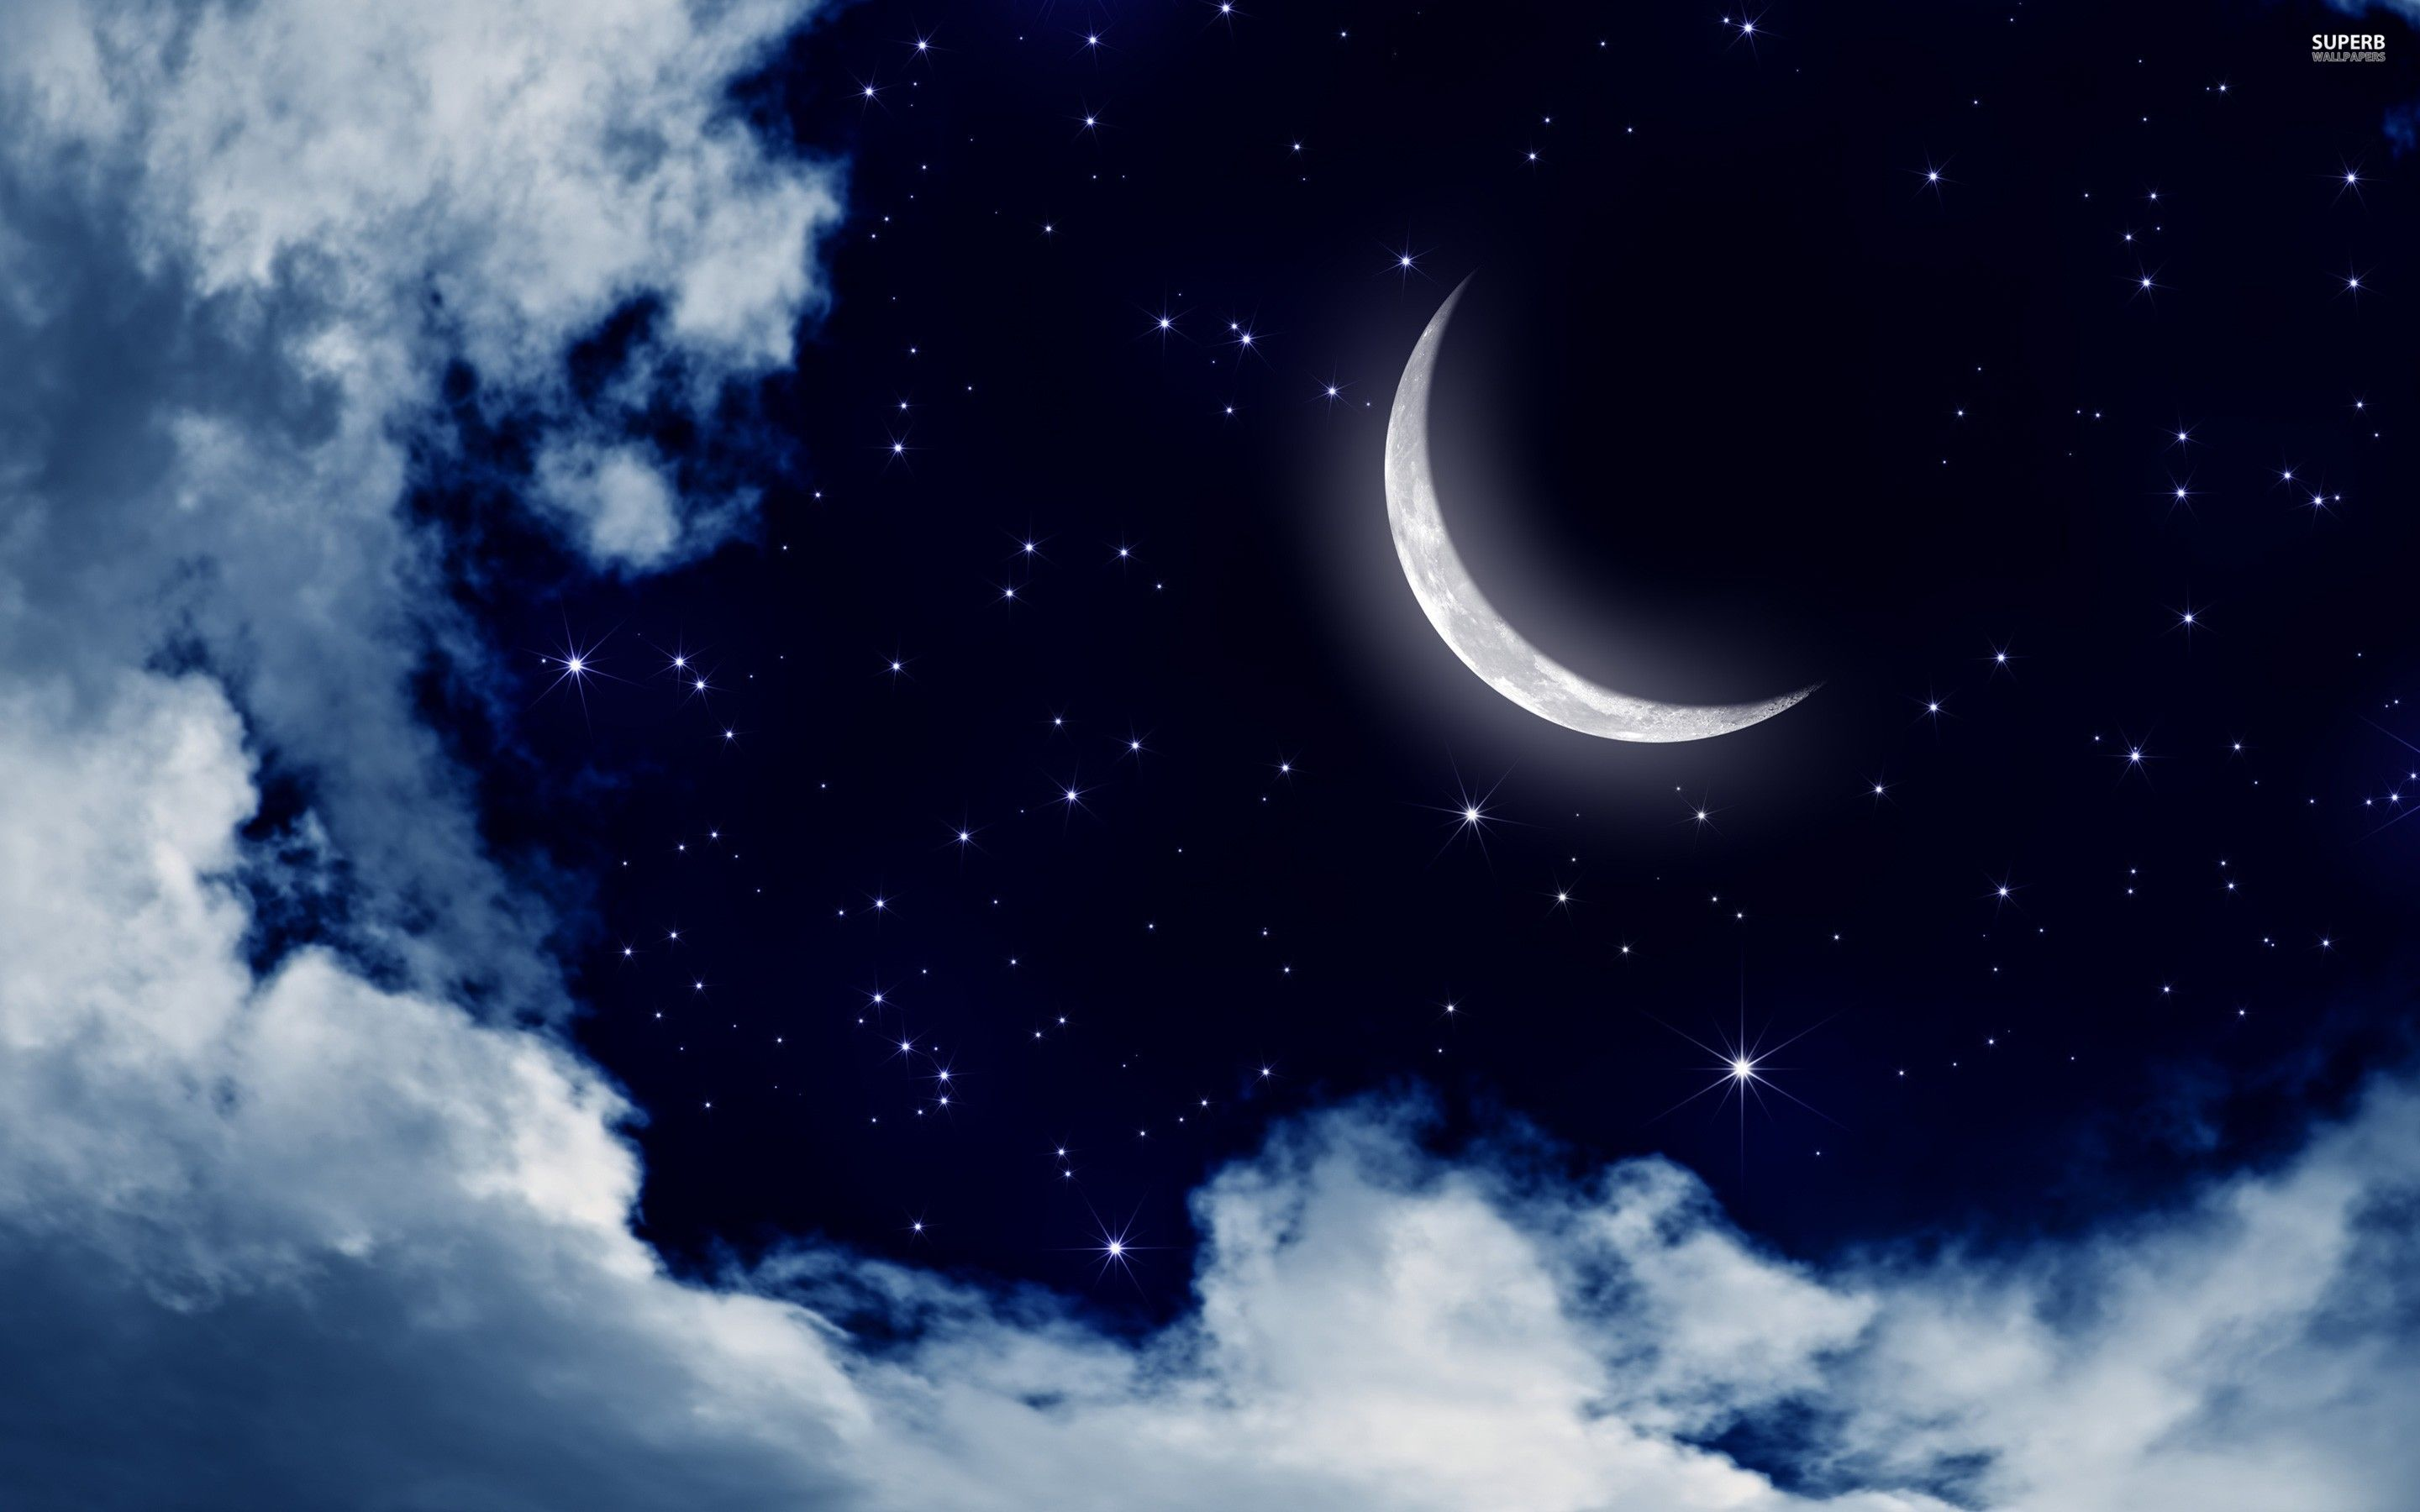 Night Sky Wallpapers - Top Free Night Sky Backgrounds